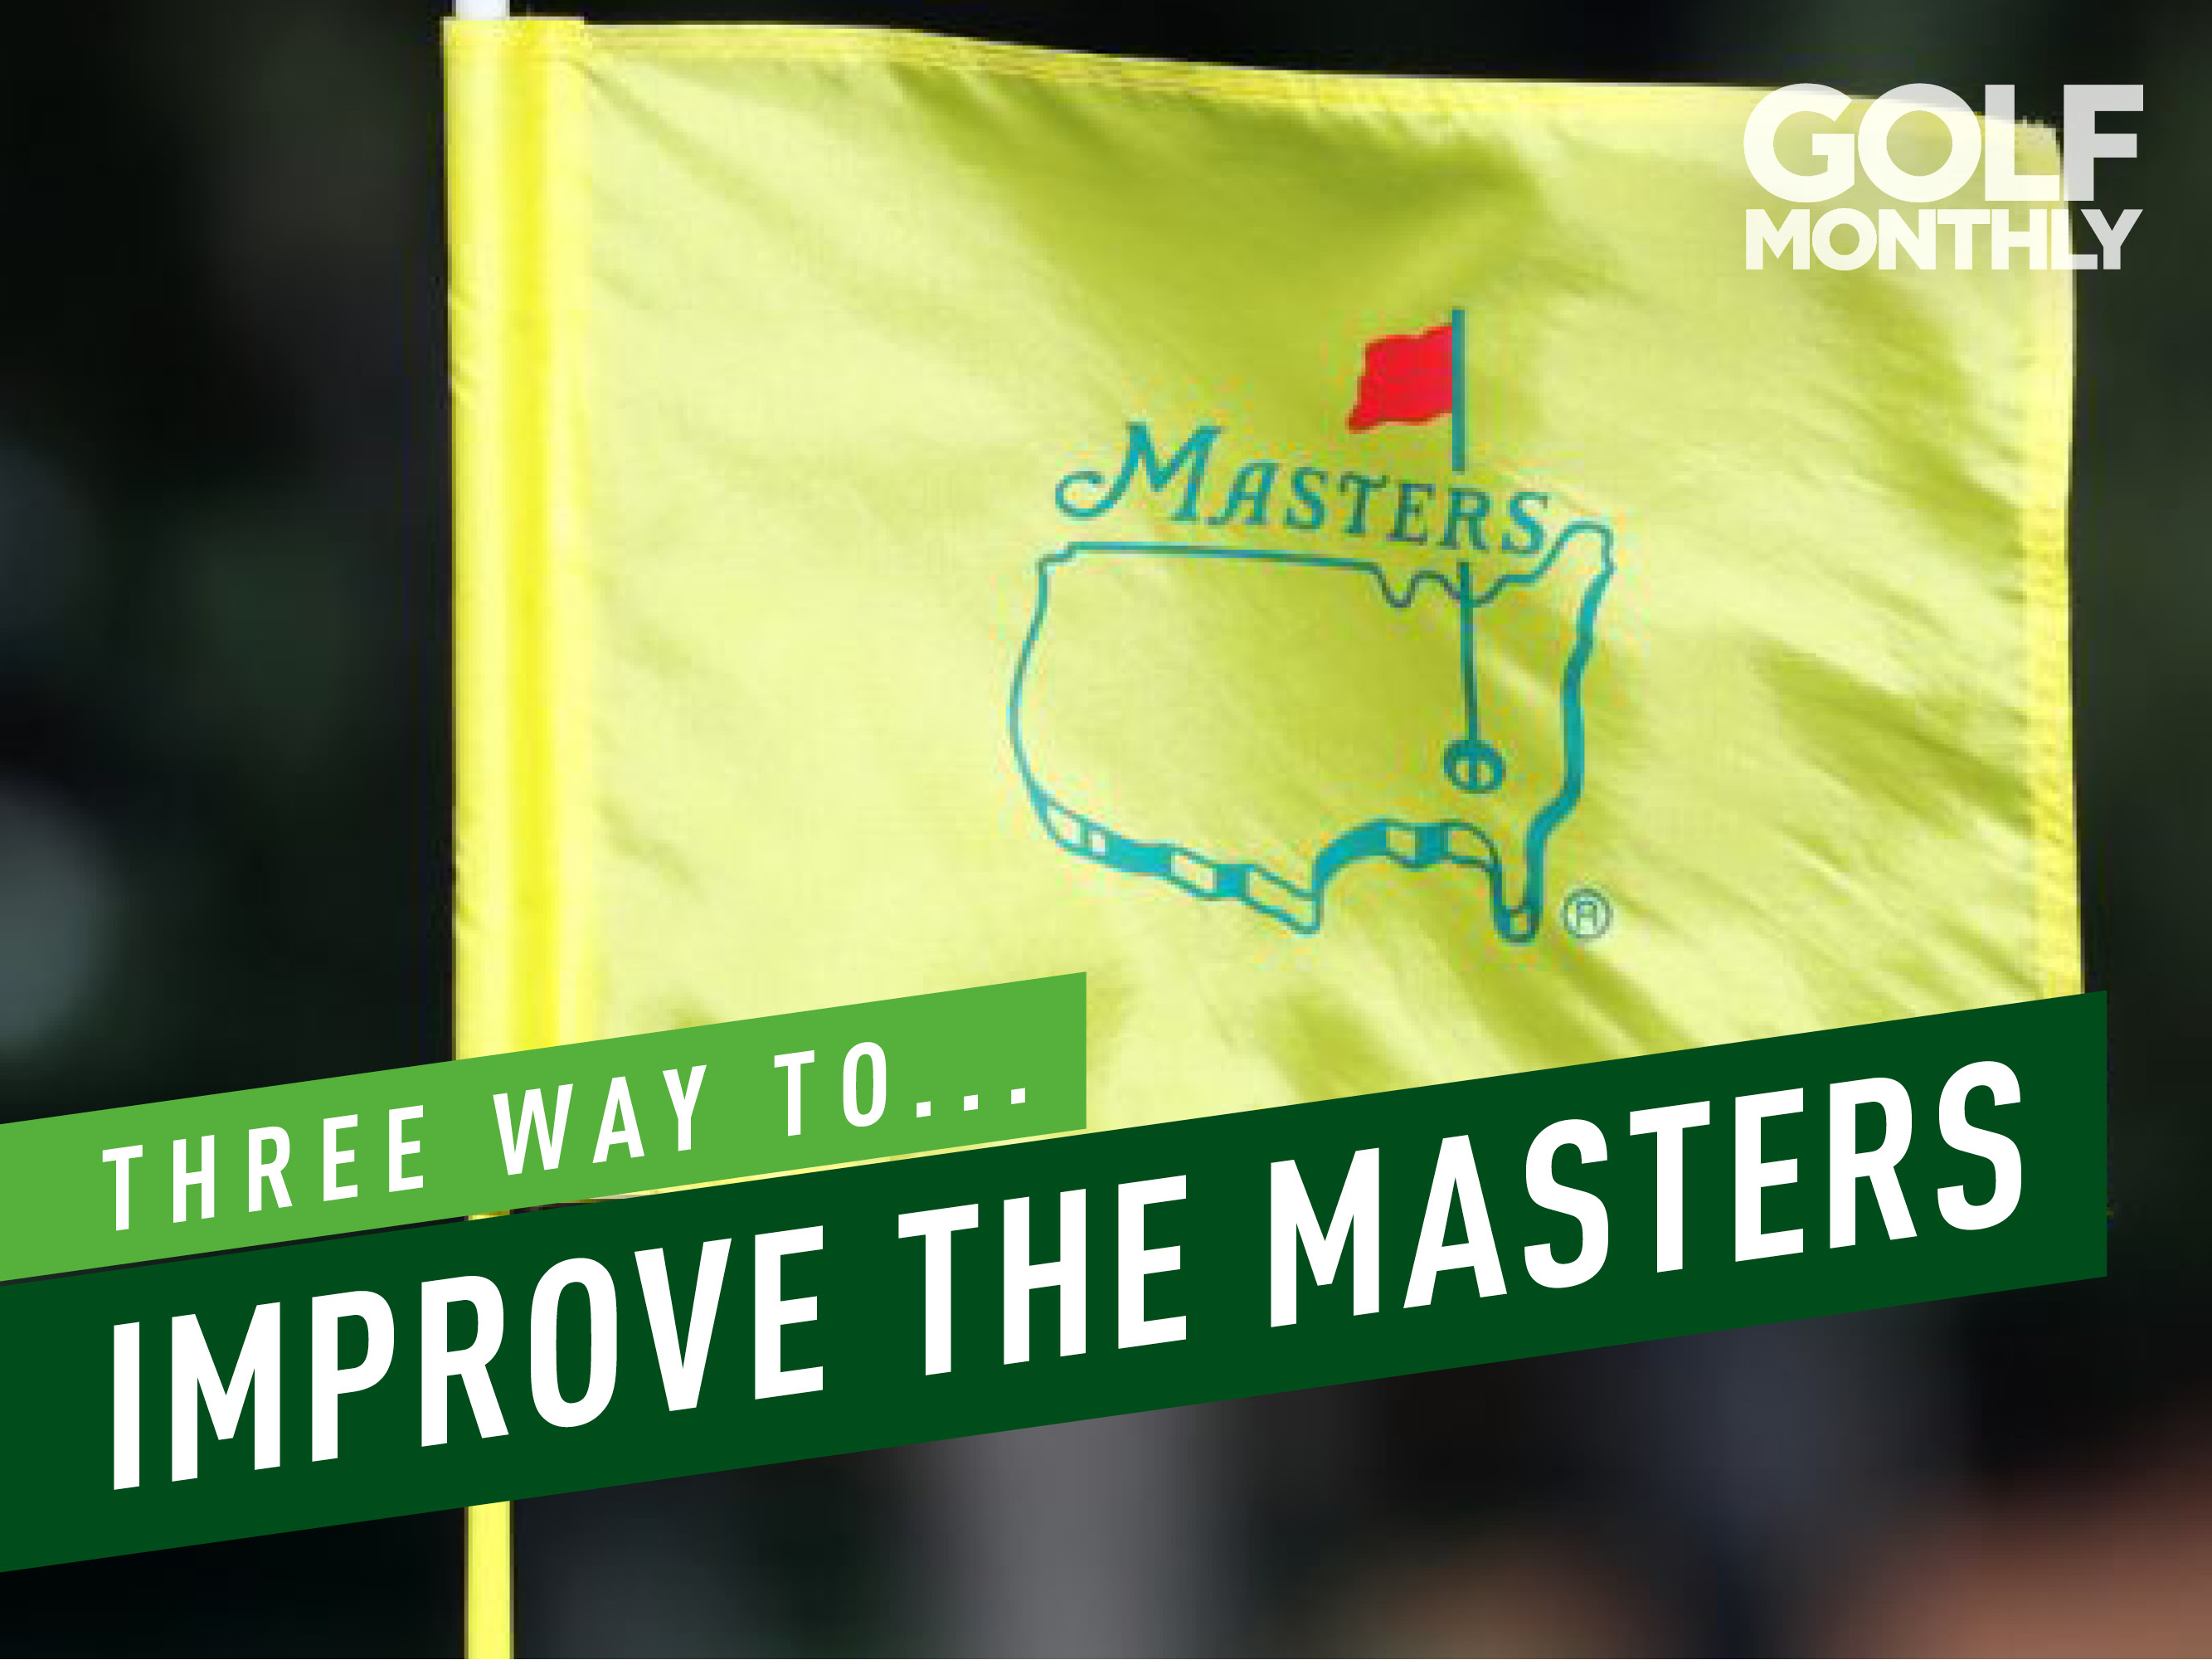 Improve the Masters